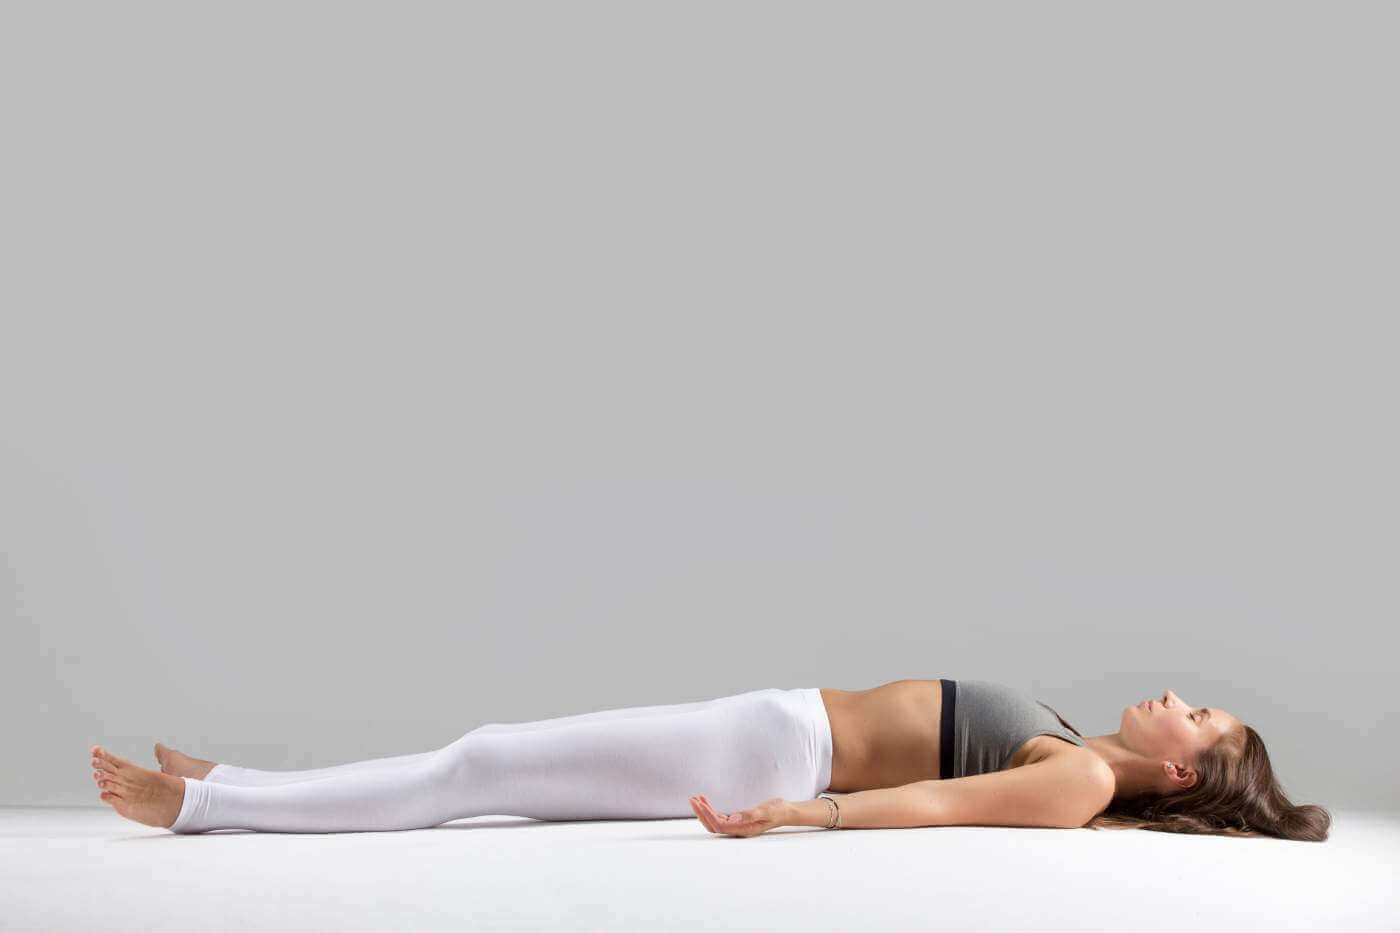 Young woman in savasana pos